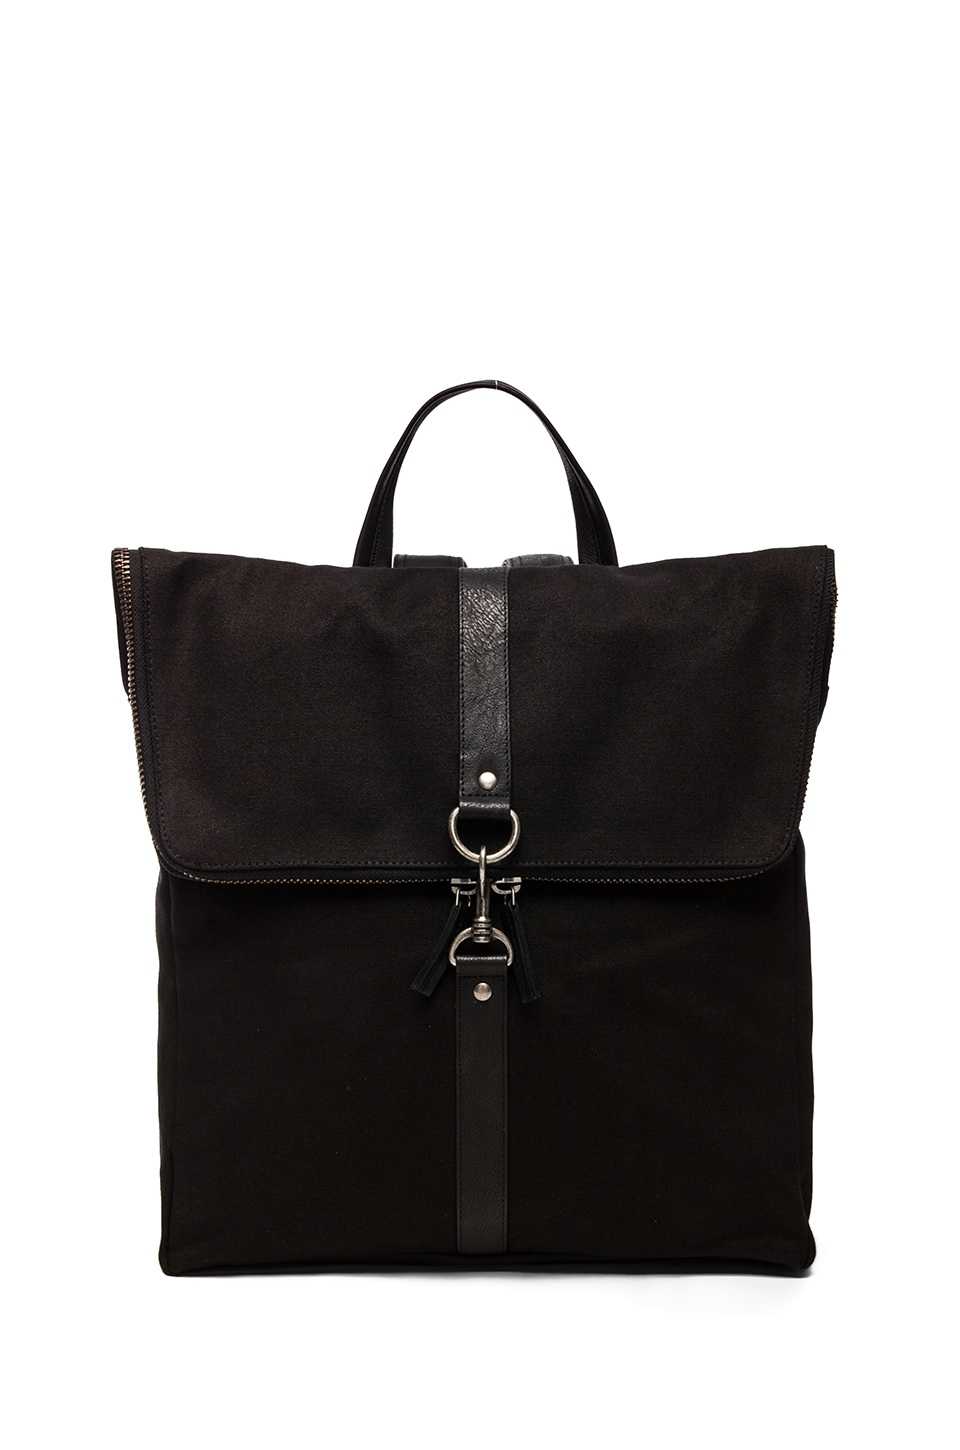 Hope Seek Bag in Black